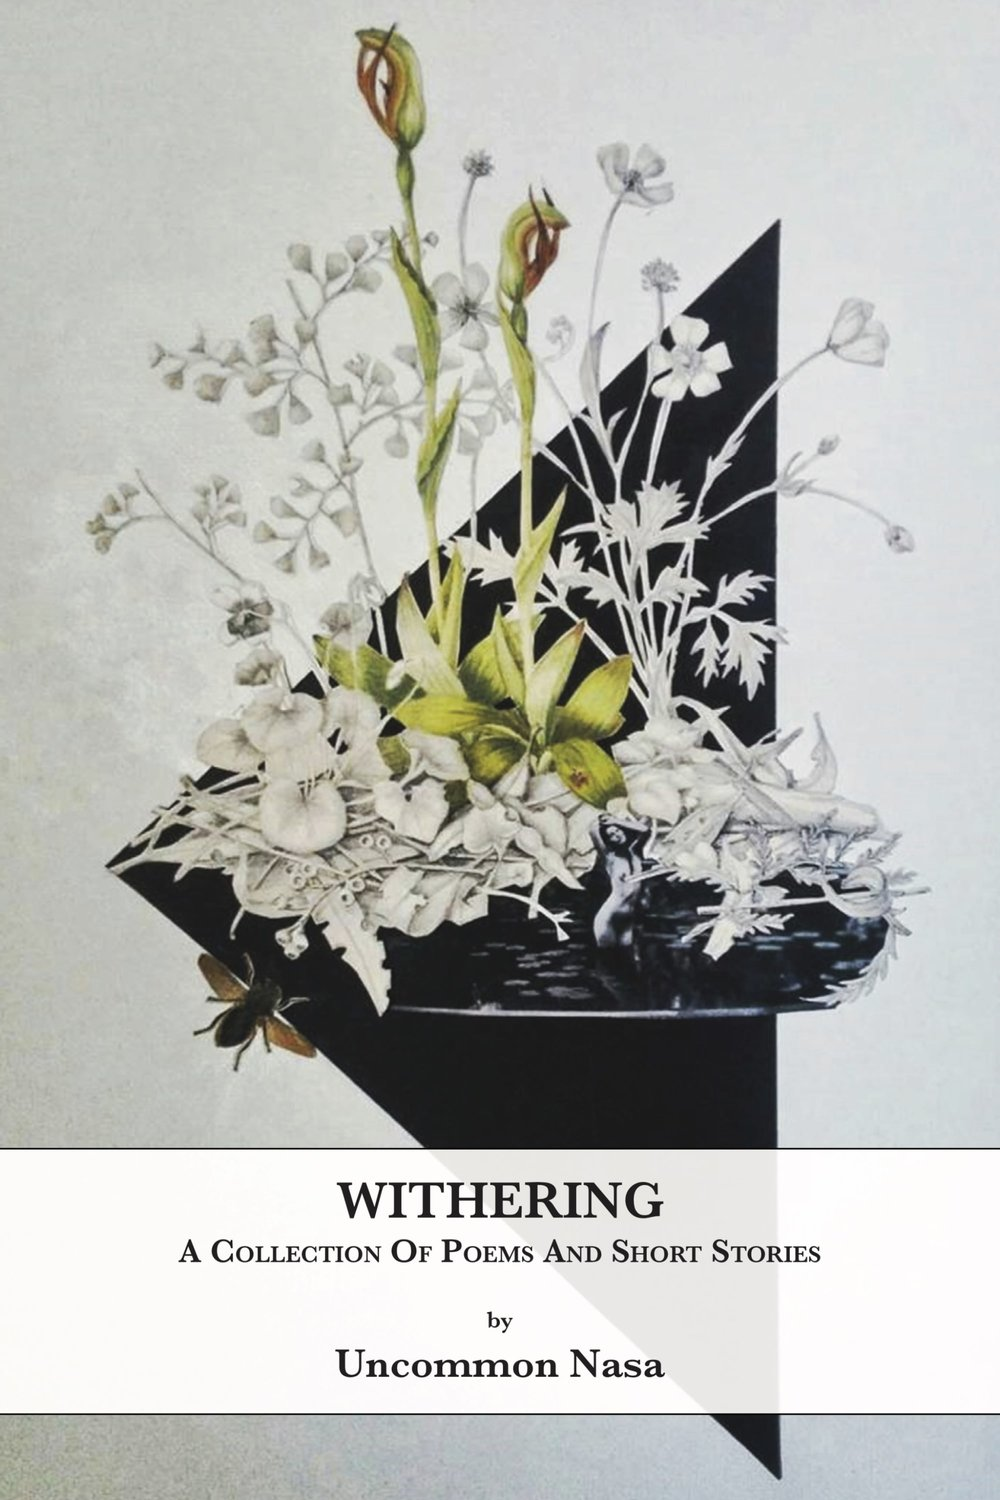 Withering [2018]